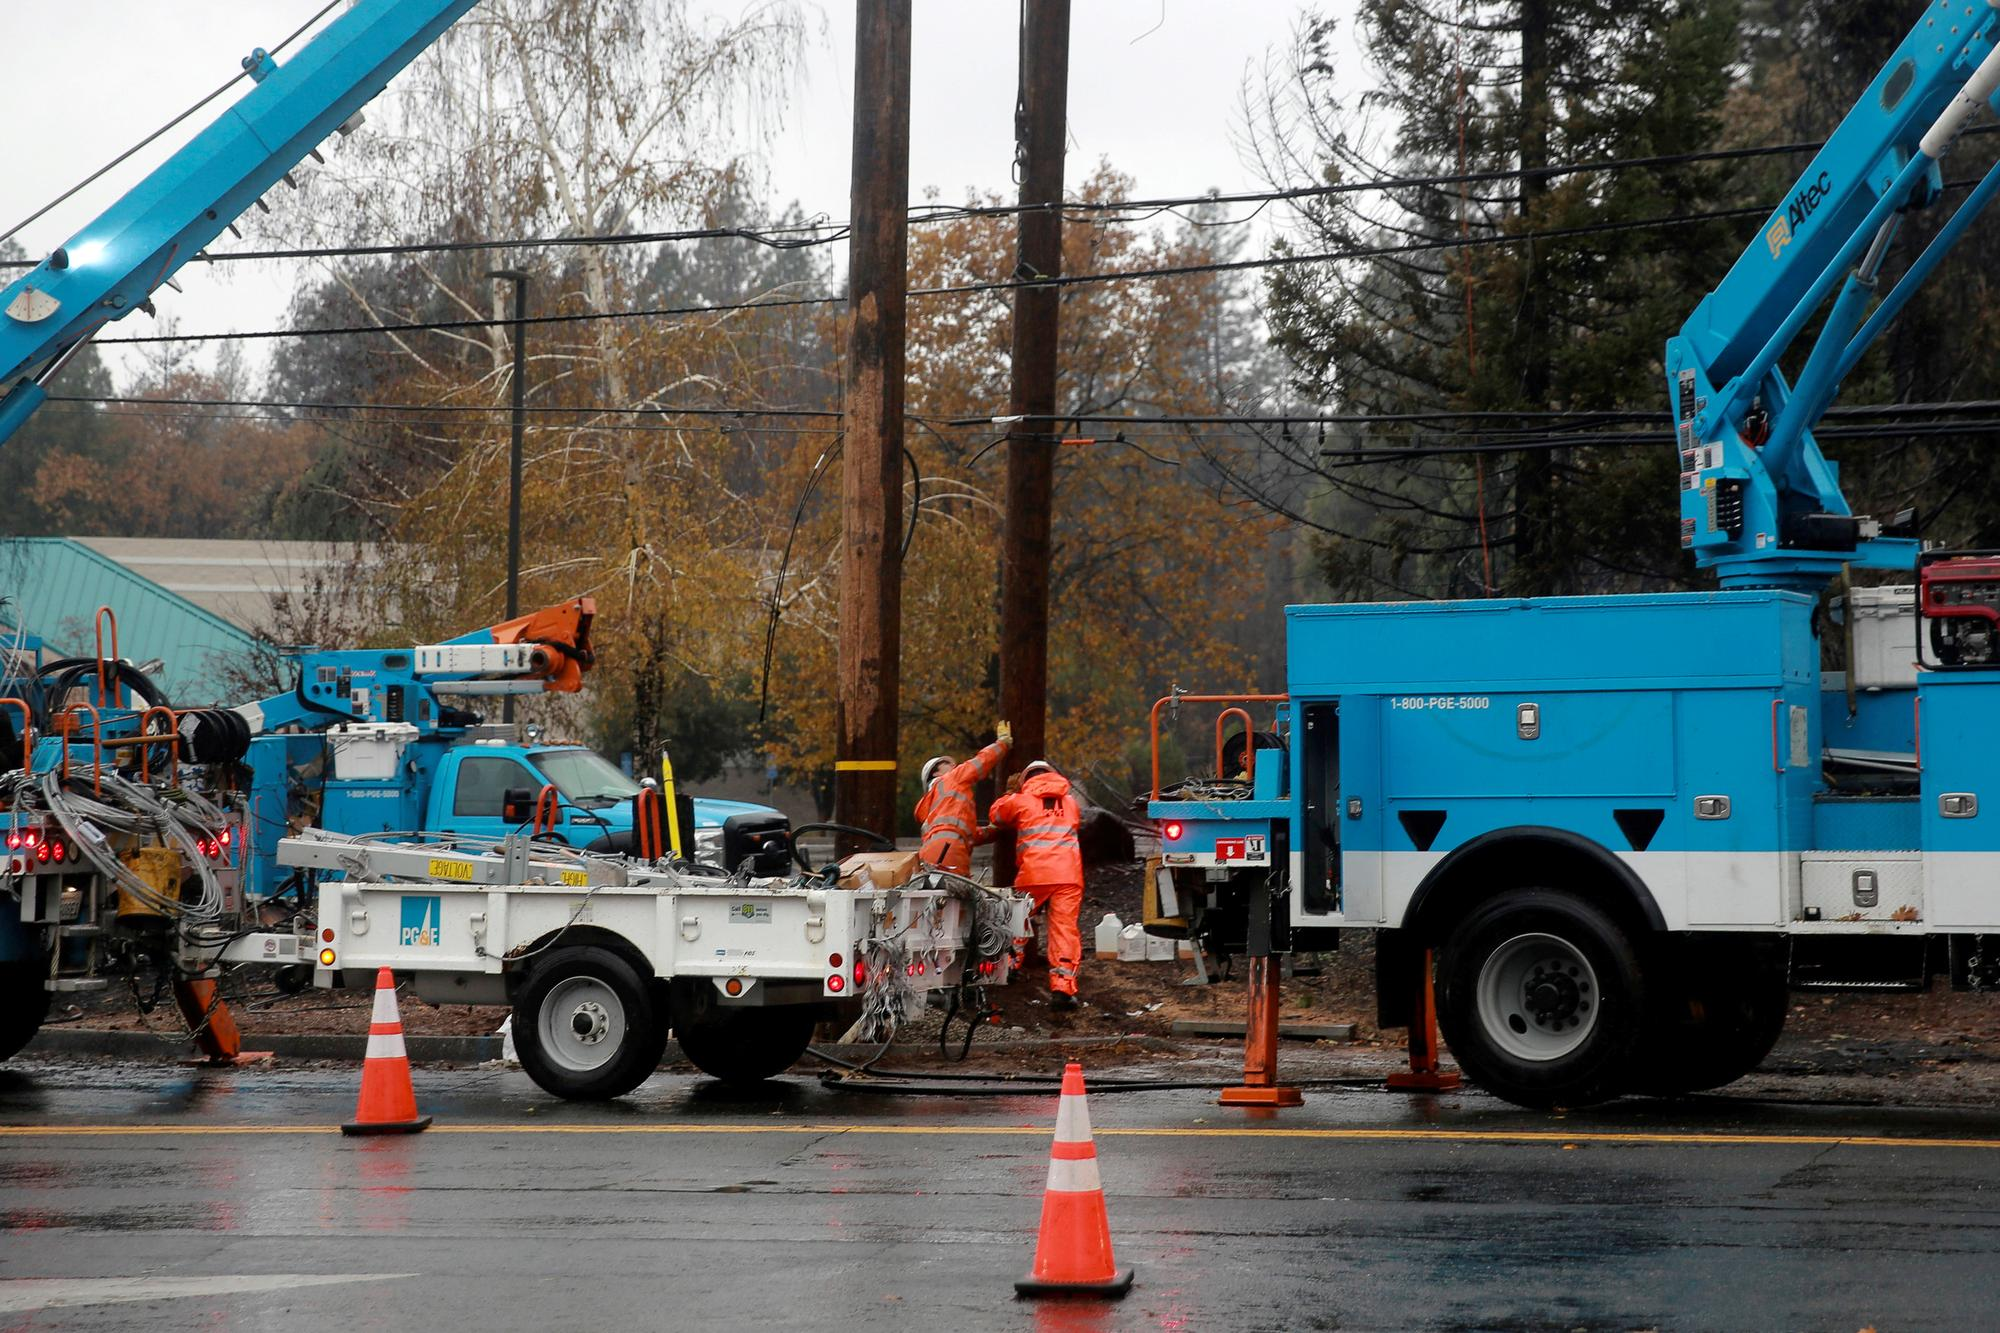 PG&E says it 'strongly disagrees' delayed maintenance played role in Camp Fire